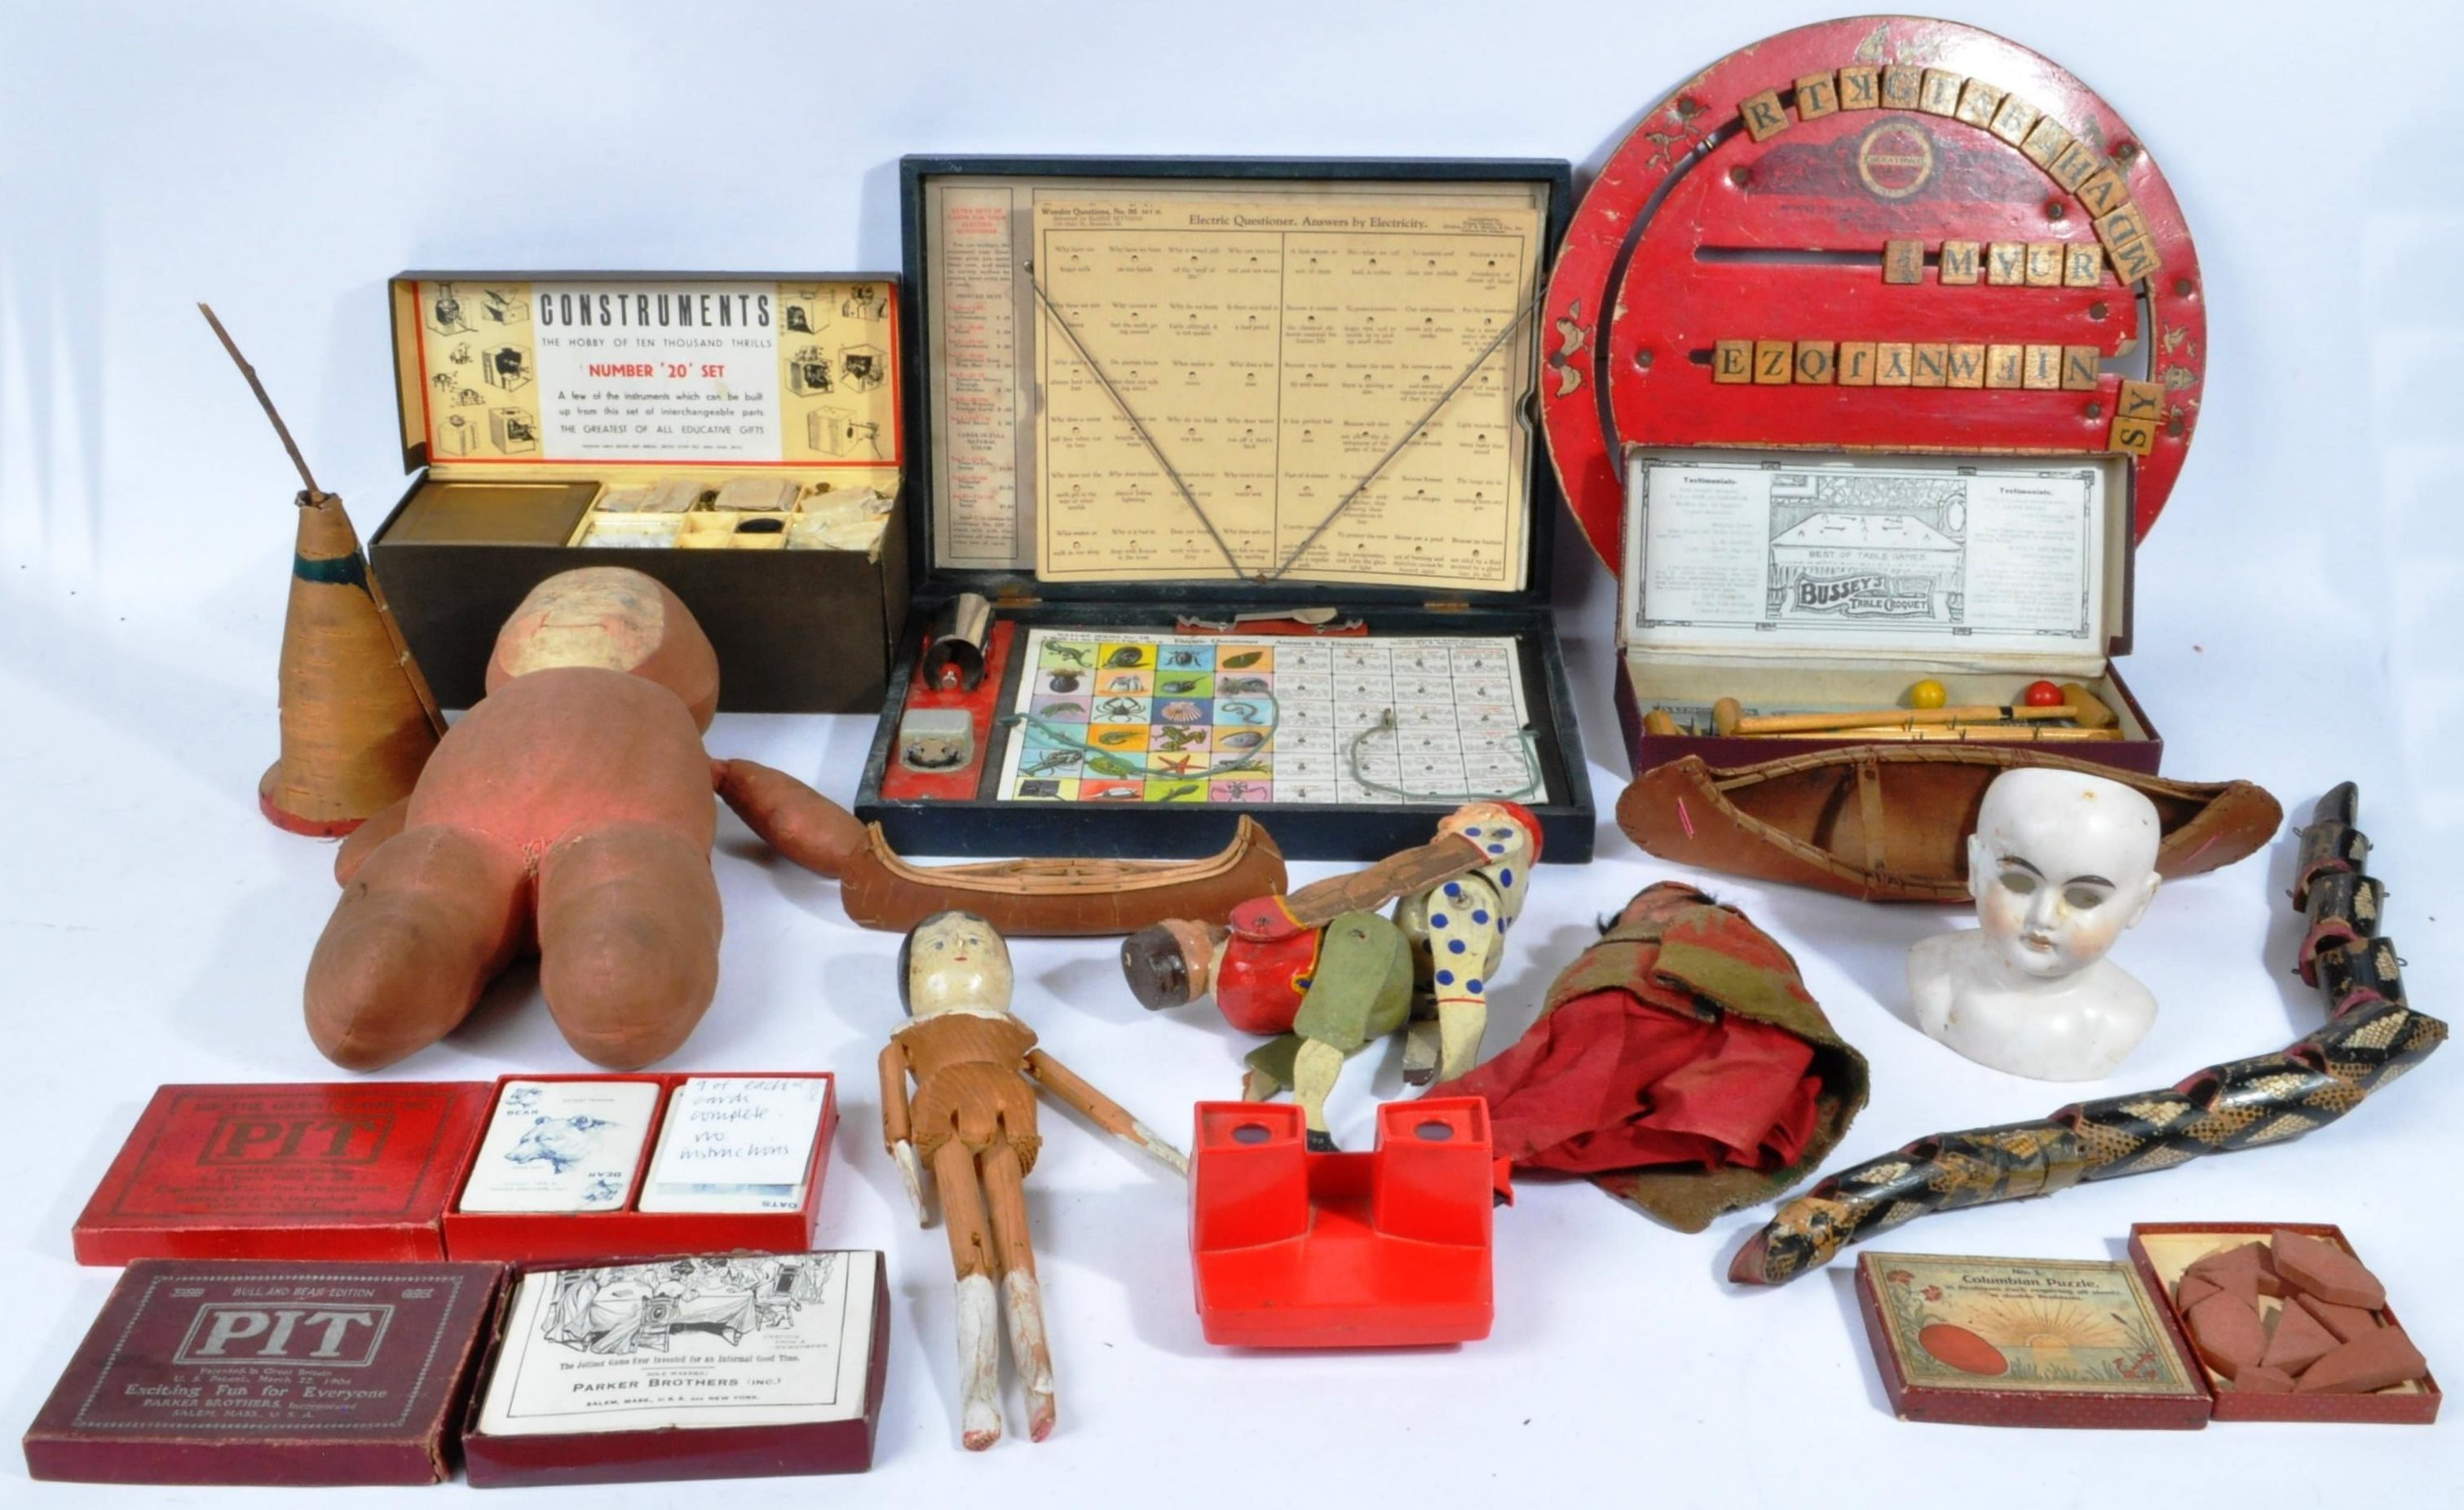 COLLECTION OF ANTIQUE TOYS - DUTCH DOLL, WOODEN TOYS ETC